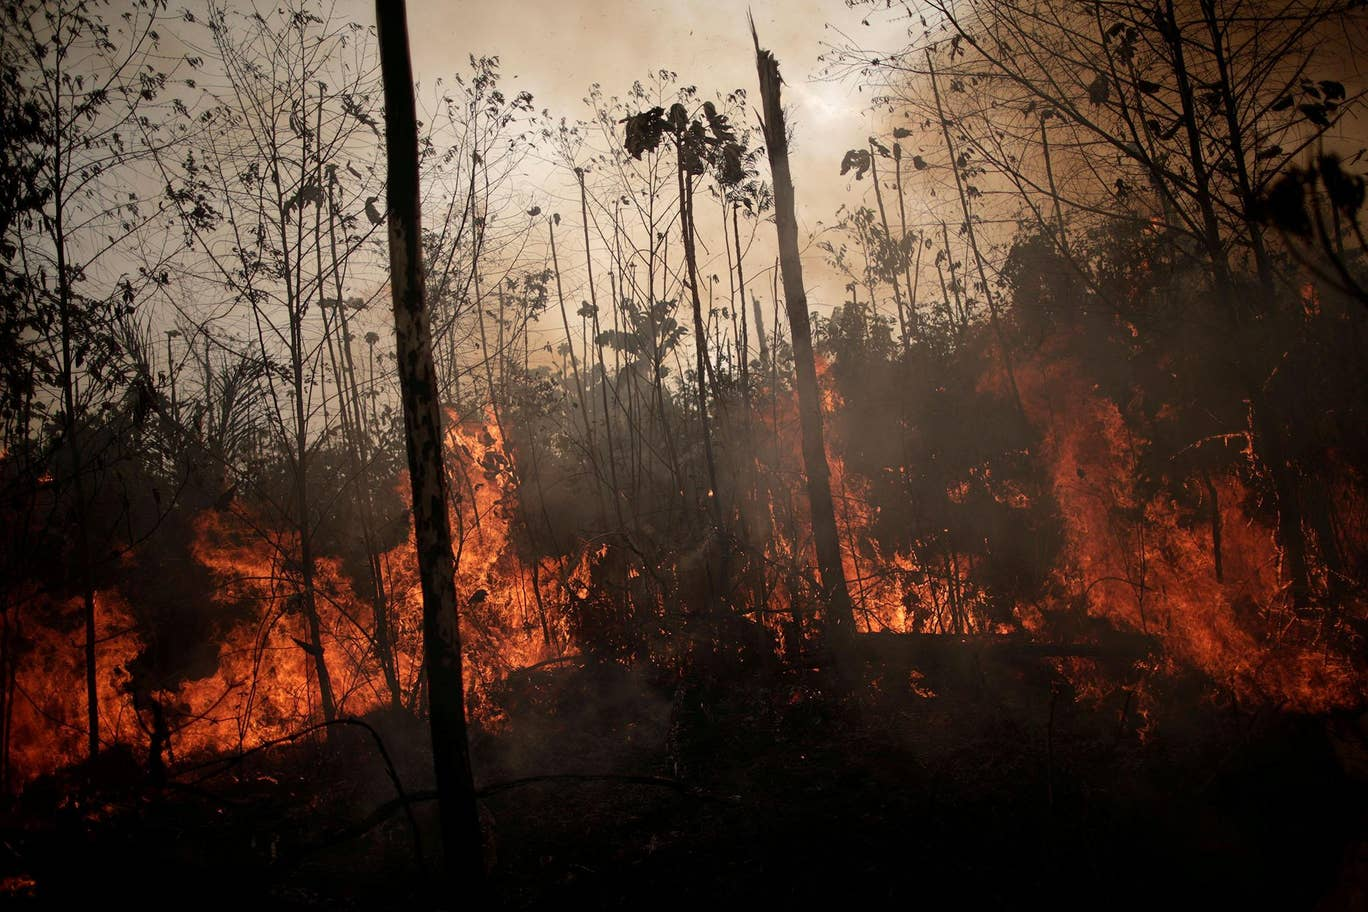 Brazil Government Rejects G7 Financial Aid Offer for Amazon Fires